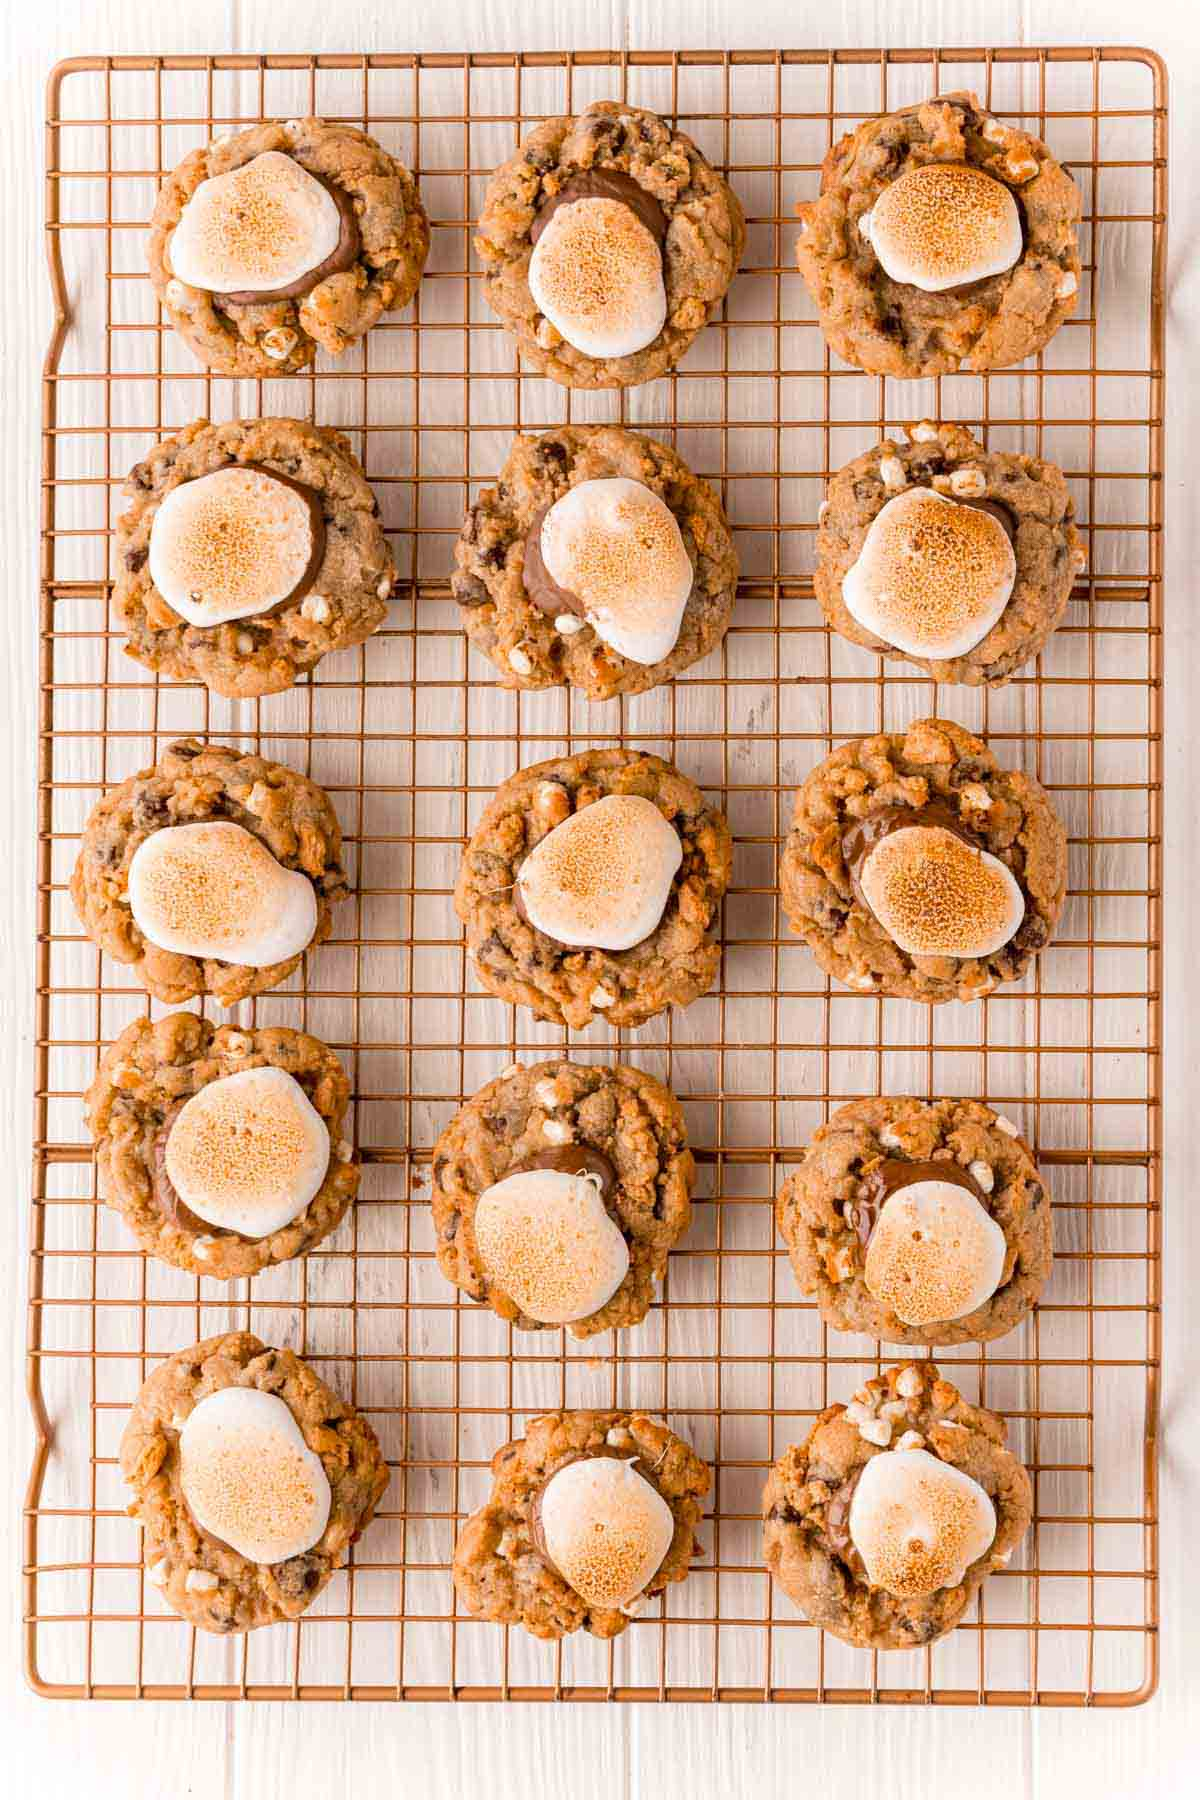 tray of s'more cookies with toasted marshmallow tops